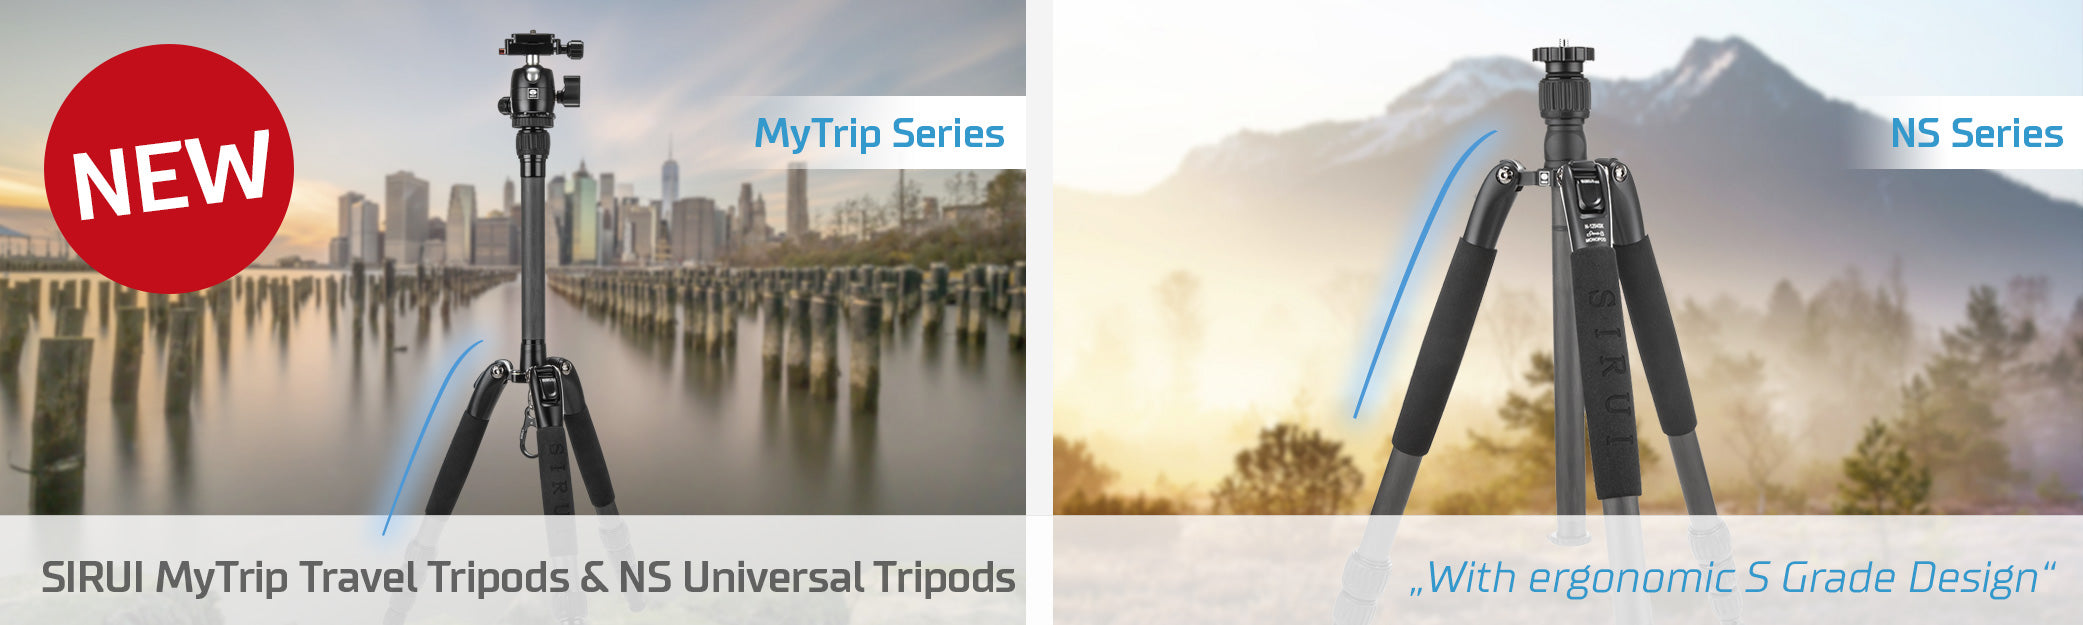 SIRUI MyTrip Travel Tripods and NS Universal Tripods